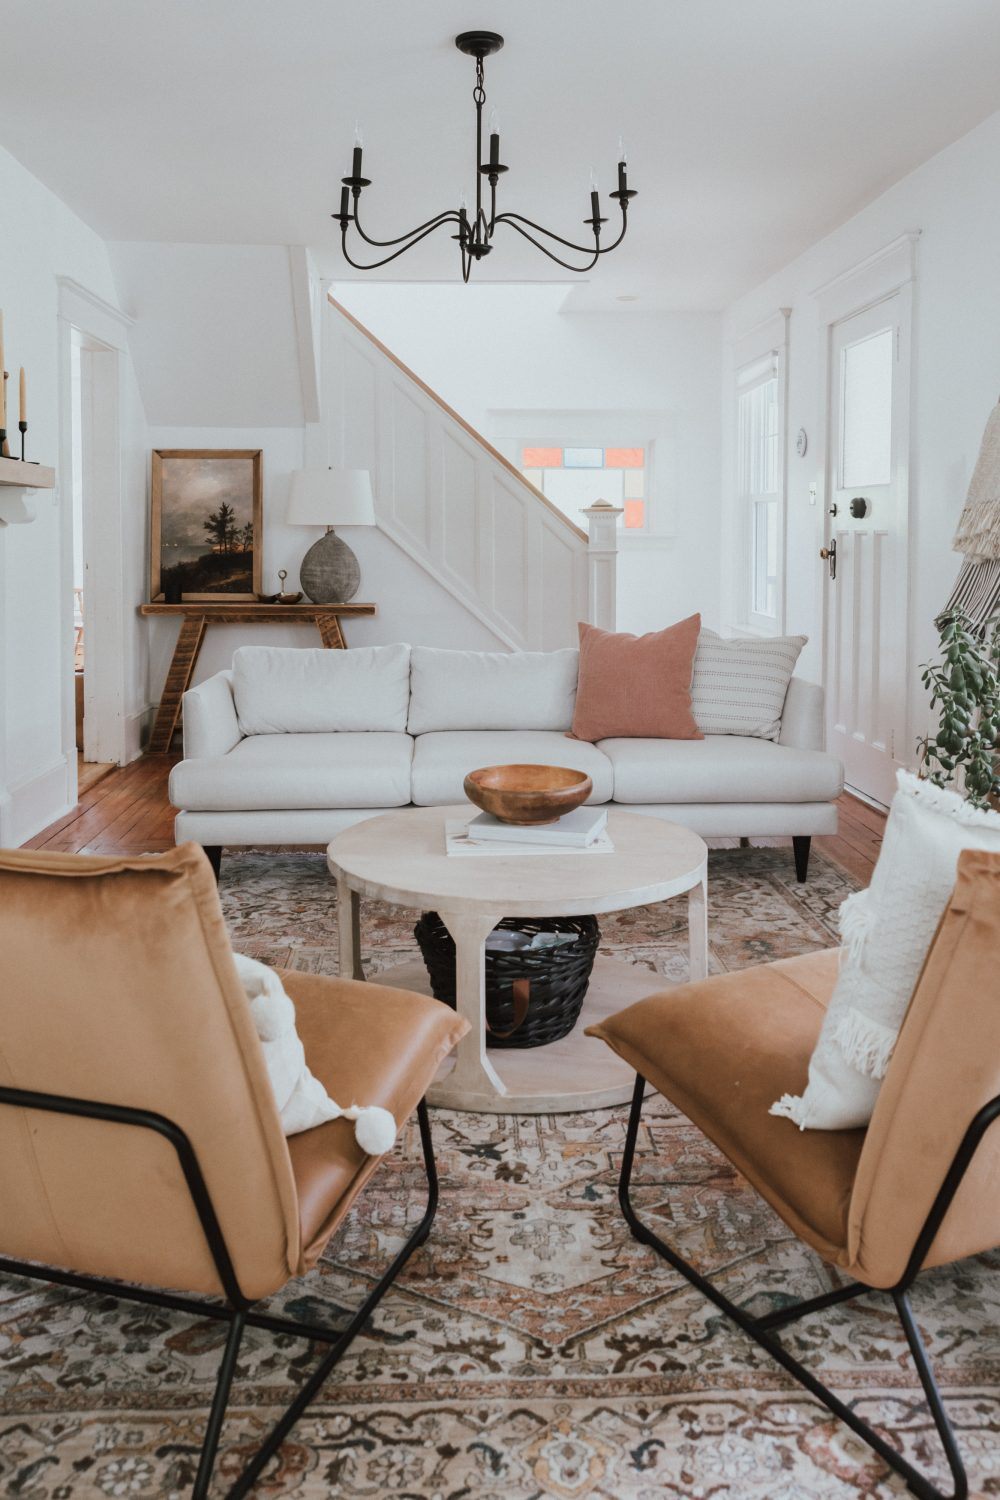 One Room Challenge: Week 6 - A New Couch from Kavuus  Lucia Sofa in Ivory Lace